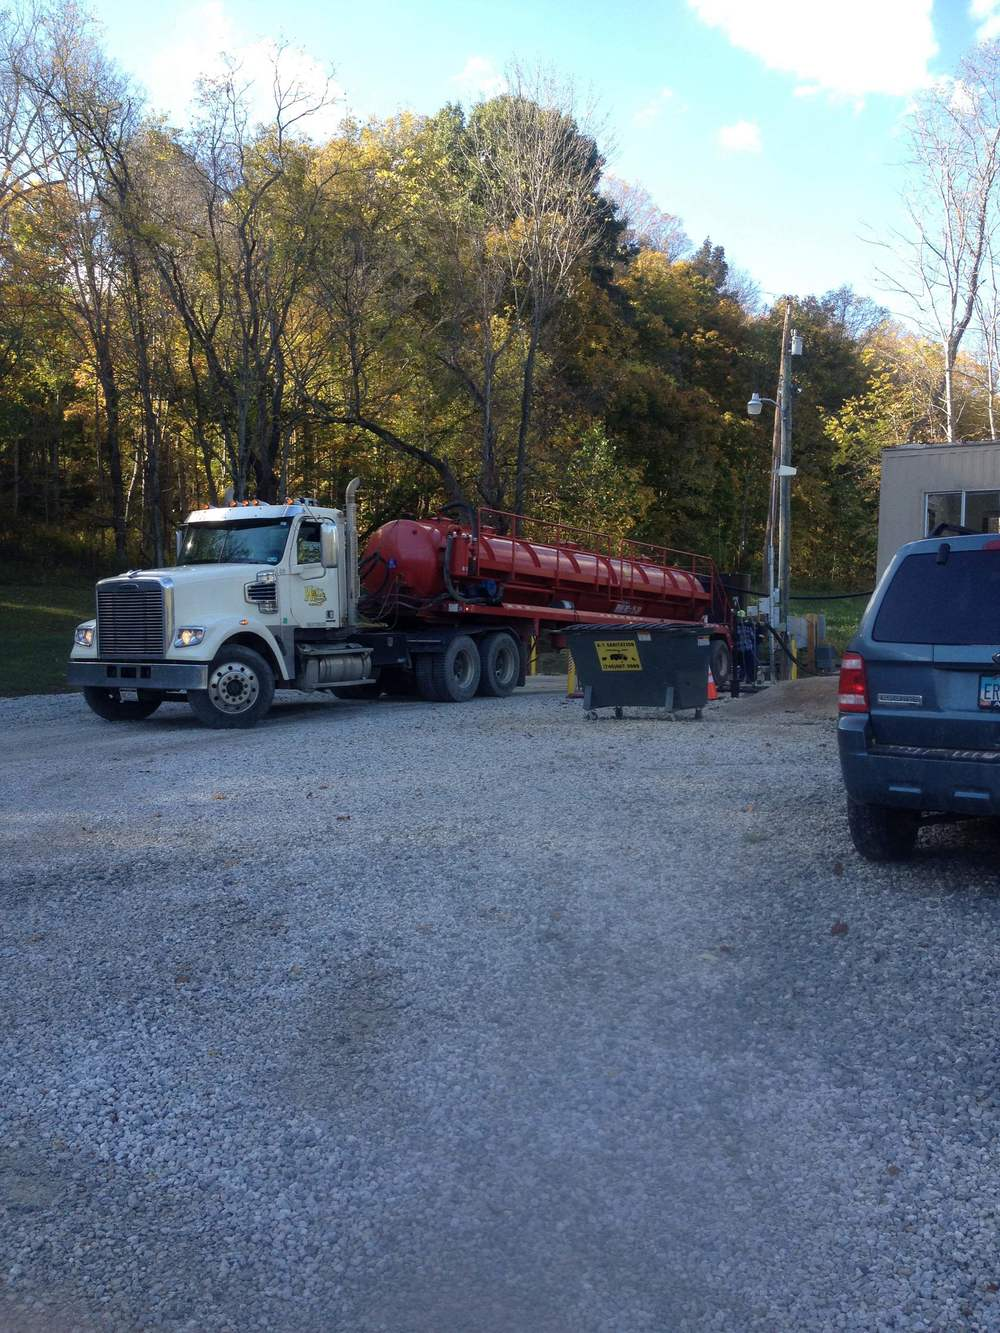 Truck unloading brine into the injection well.